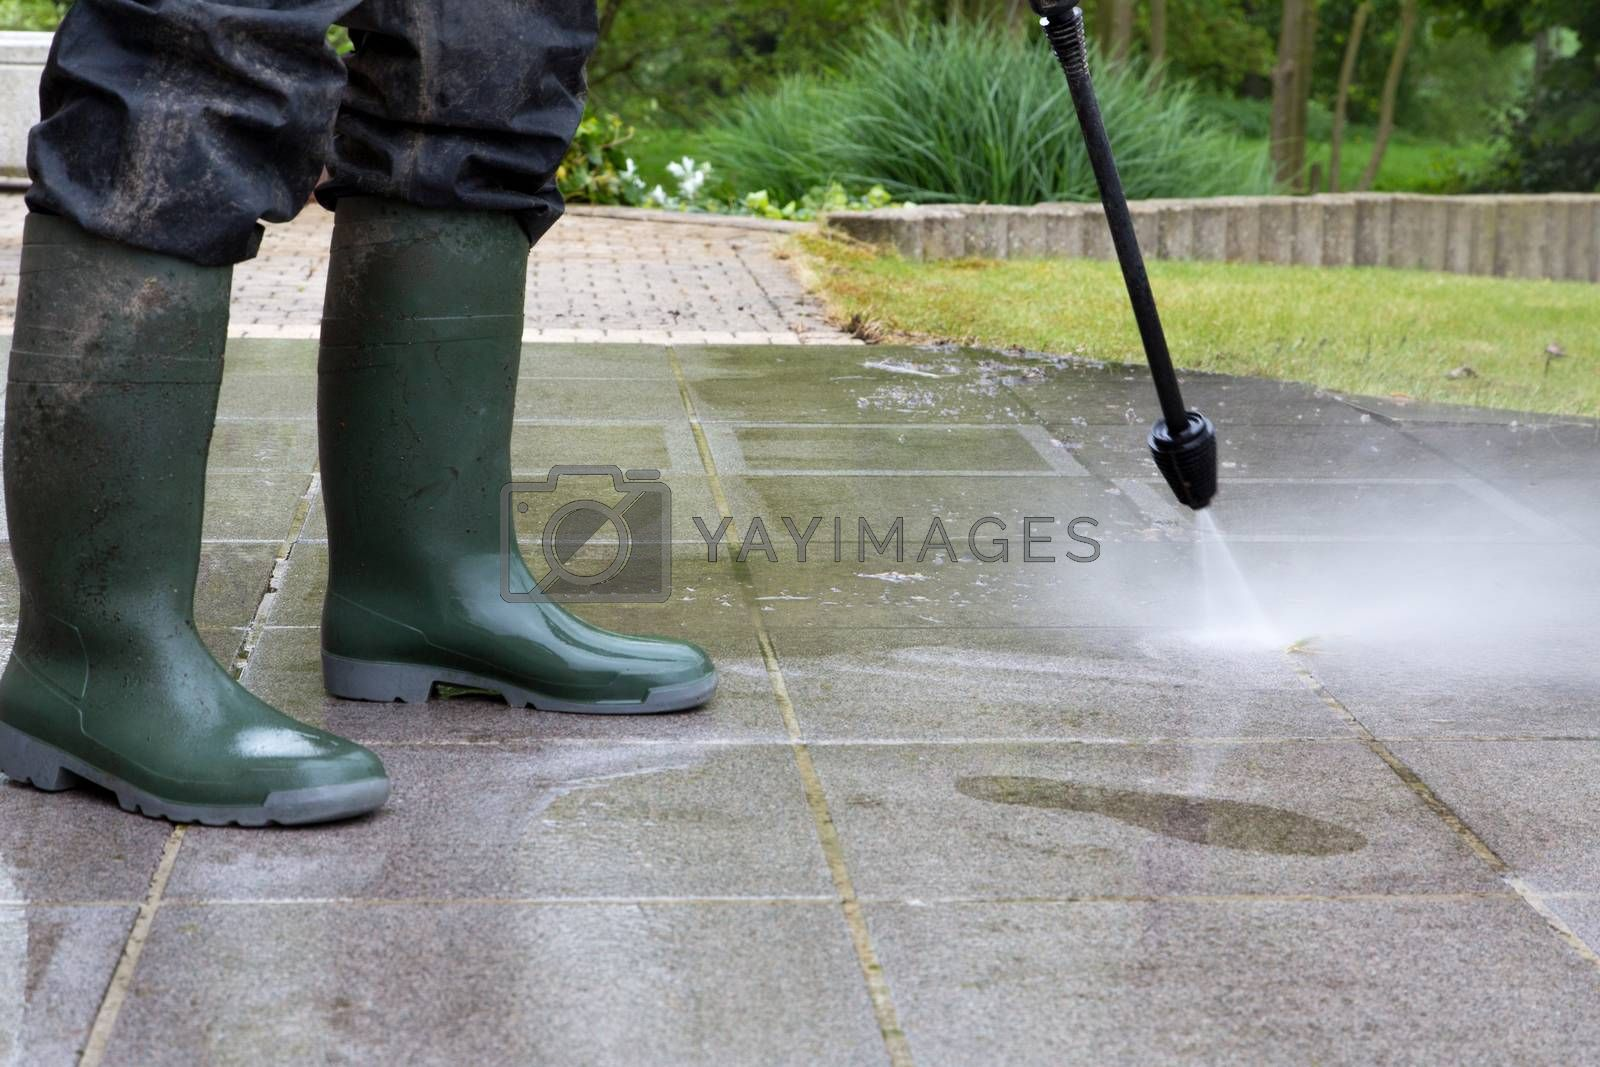 High Pressure Cleaning - 06 by Kartouchken